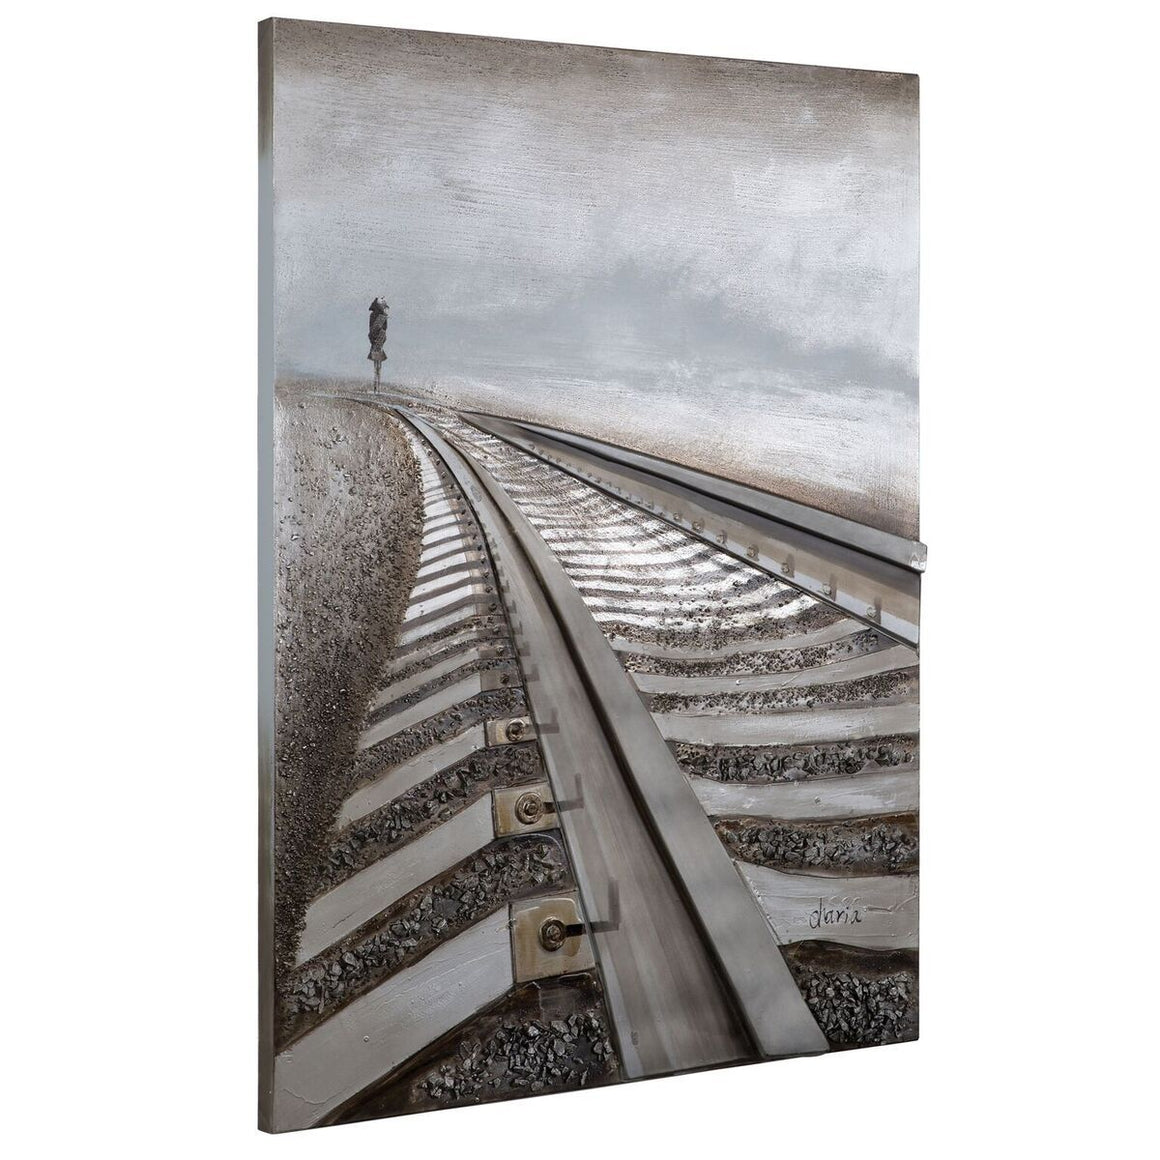 "Destination Anywhere 3D Railroad Wall Art 48"" Tall - Rustic Deco Incorporated"